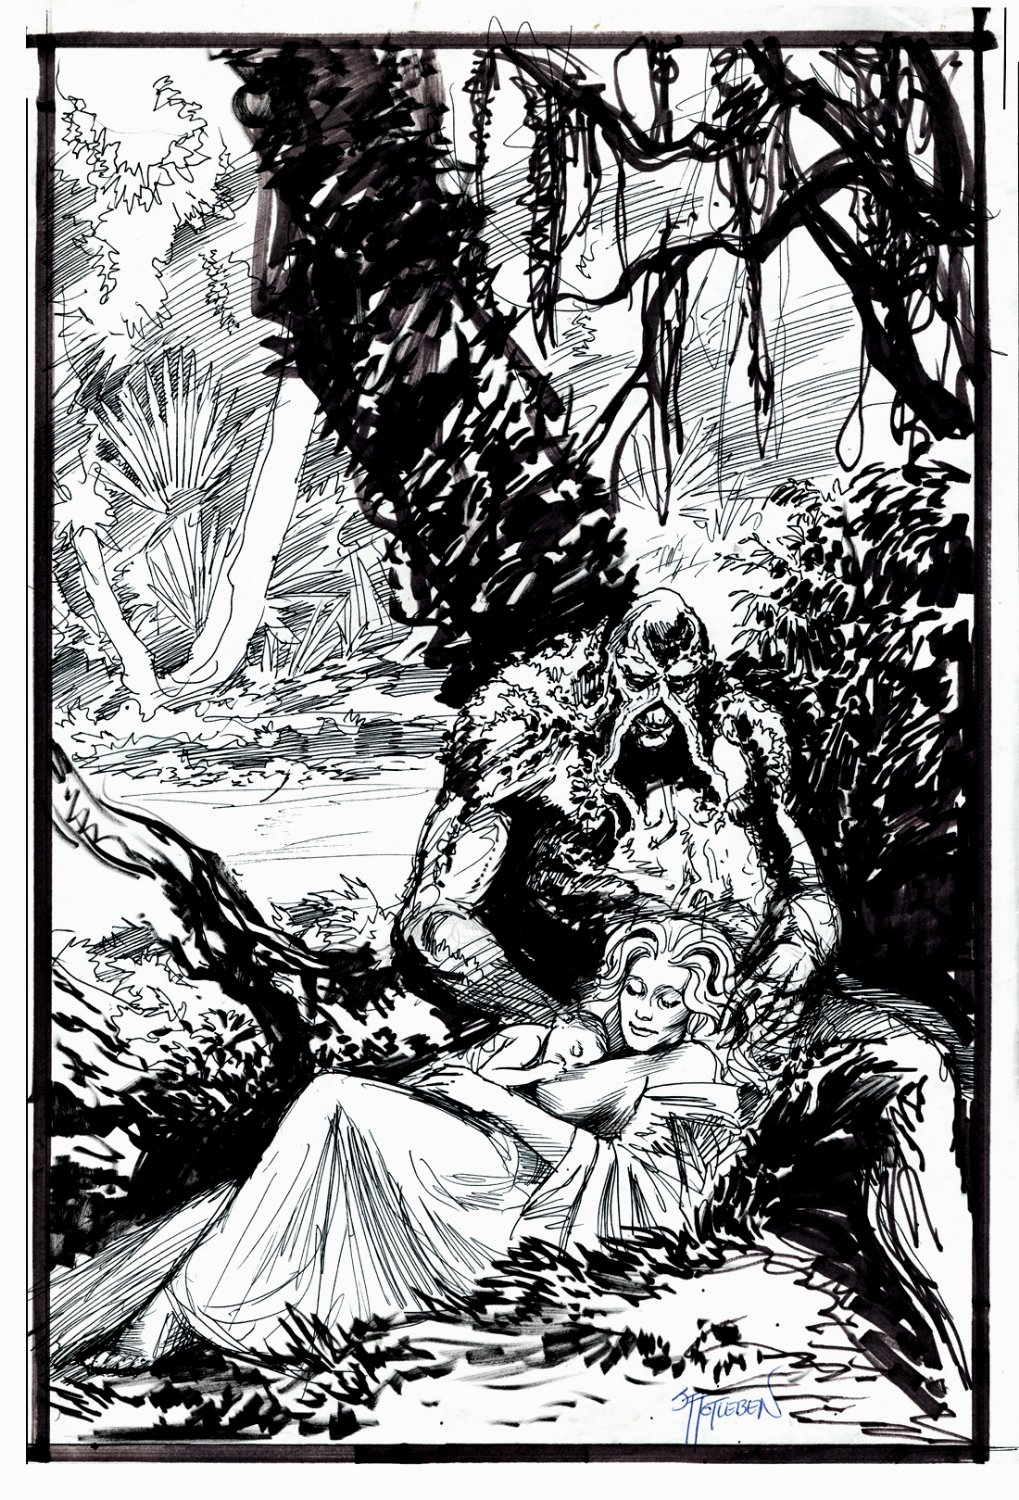 Swamp Thing, Abby Pinup SOLD LIVE ON 'DUELING DEALERS EPISODE #36 PODCAST ON 9-15-2021 (RE-WATCH THIS FUNNY ART SELLING SHOW HERE)